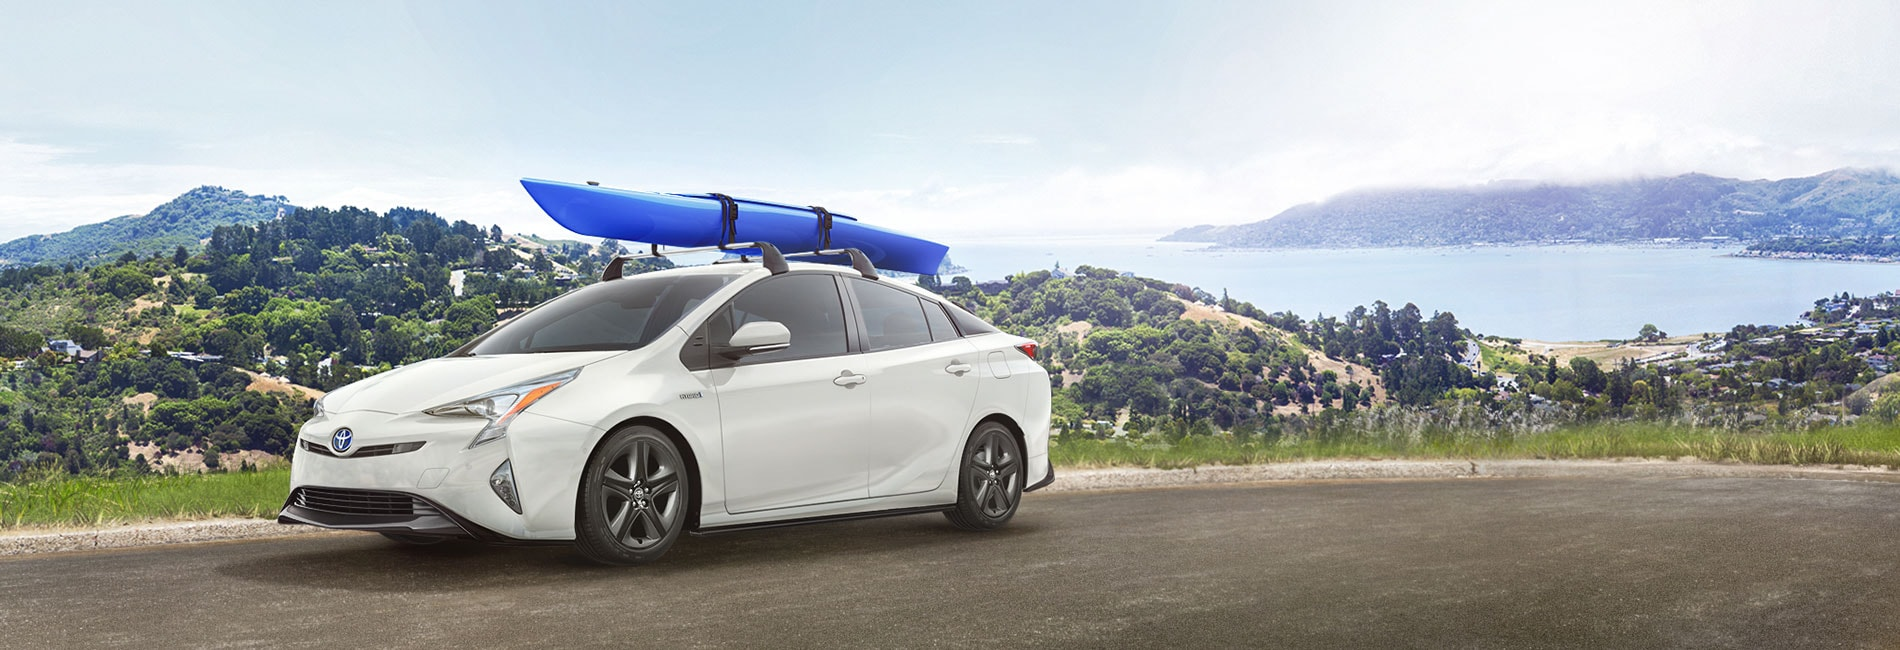 Toyota Prius Exterior Vehicle Features